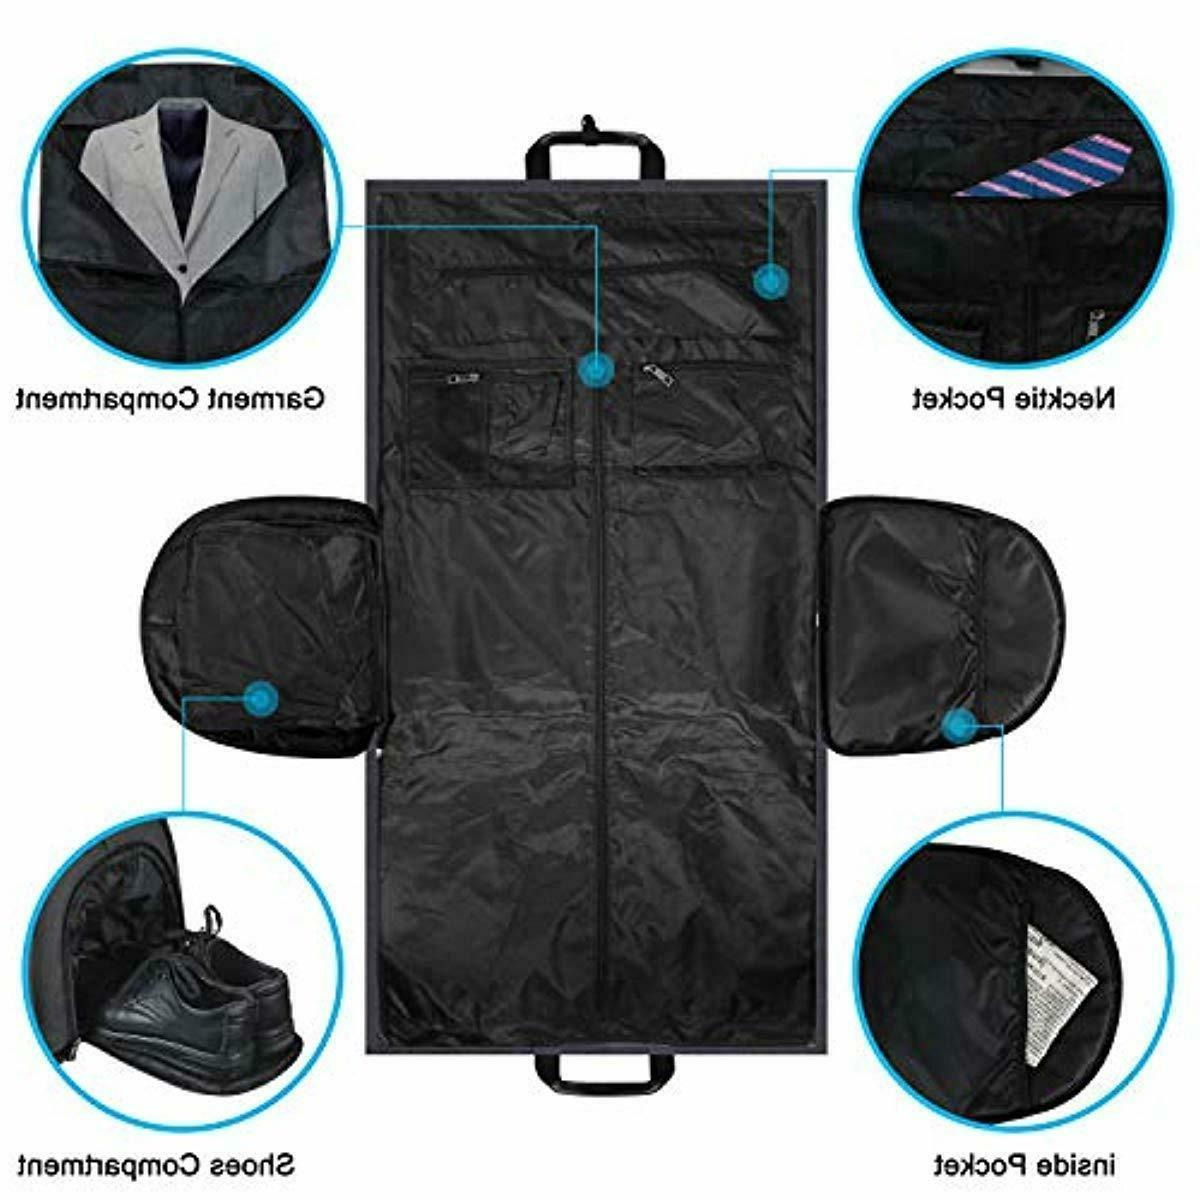 2 in 1 Travel Bag Convertible Suit Compartment